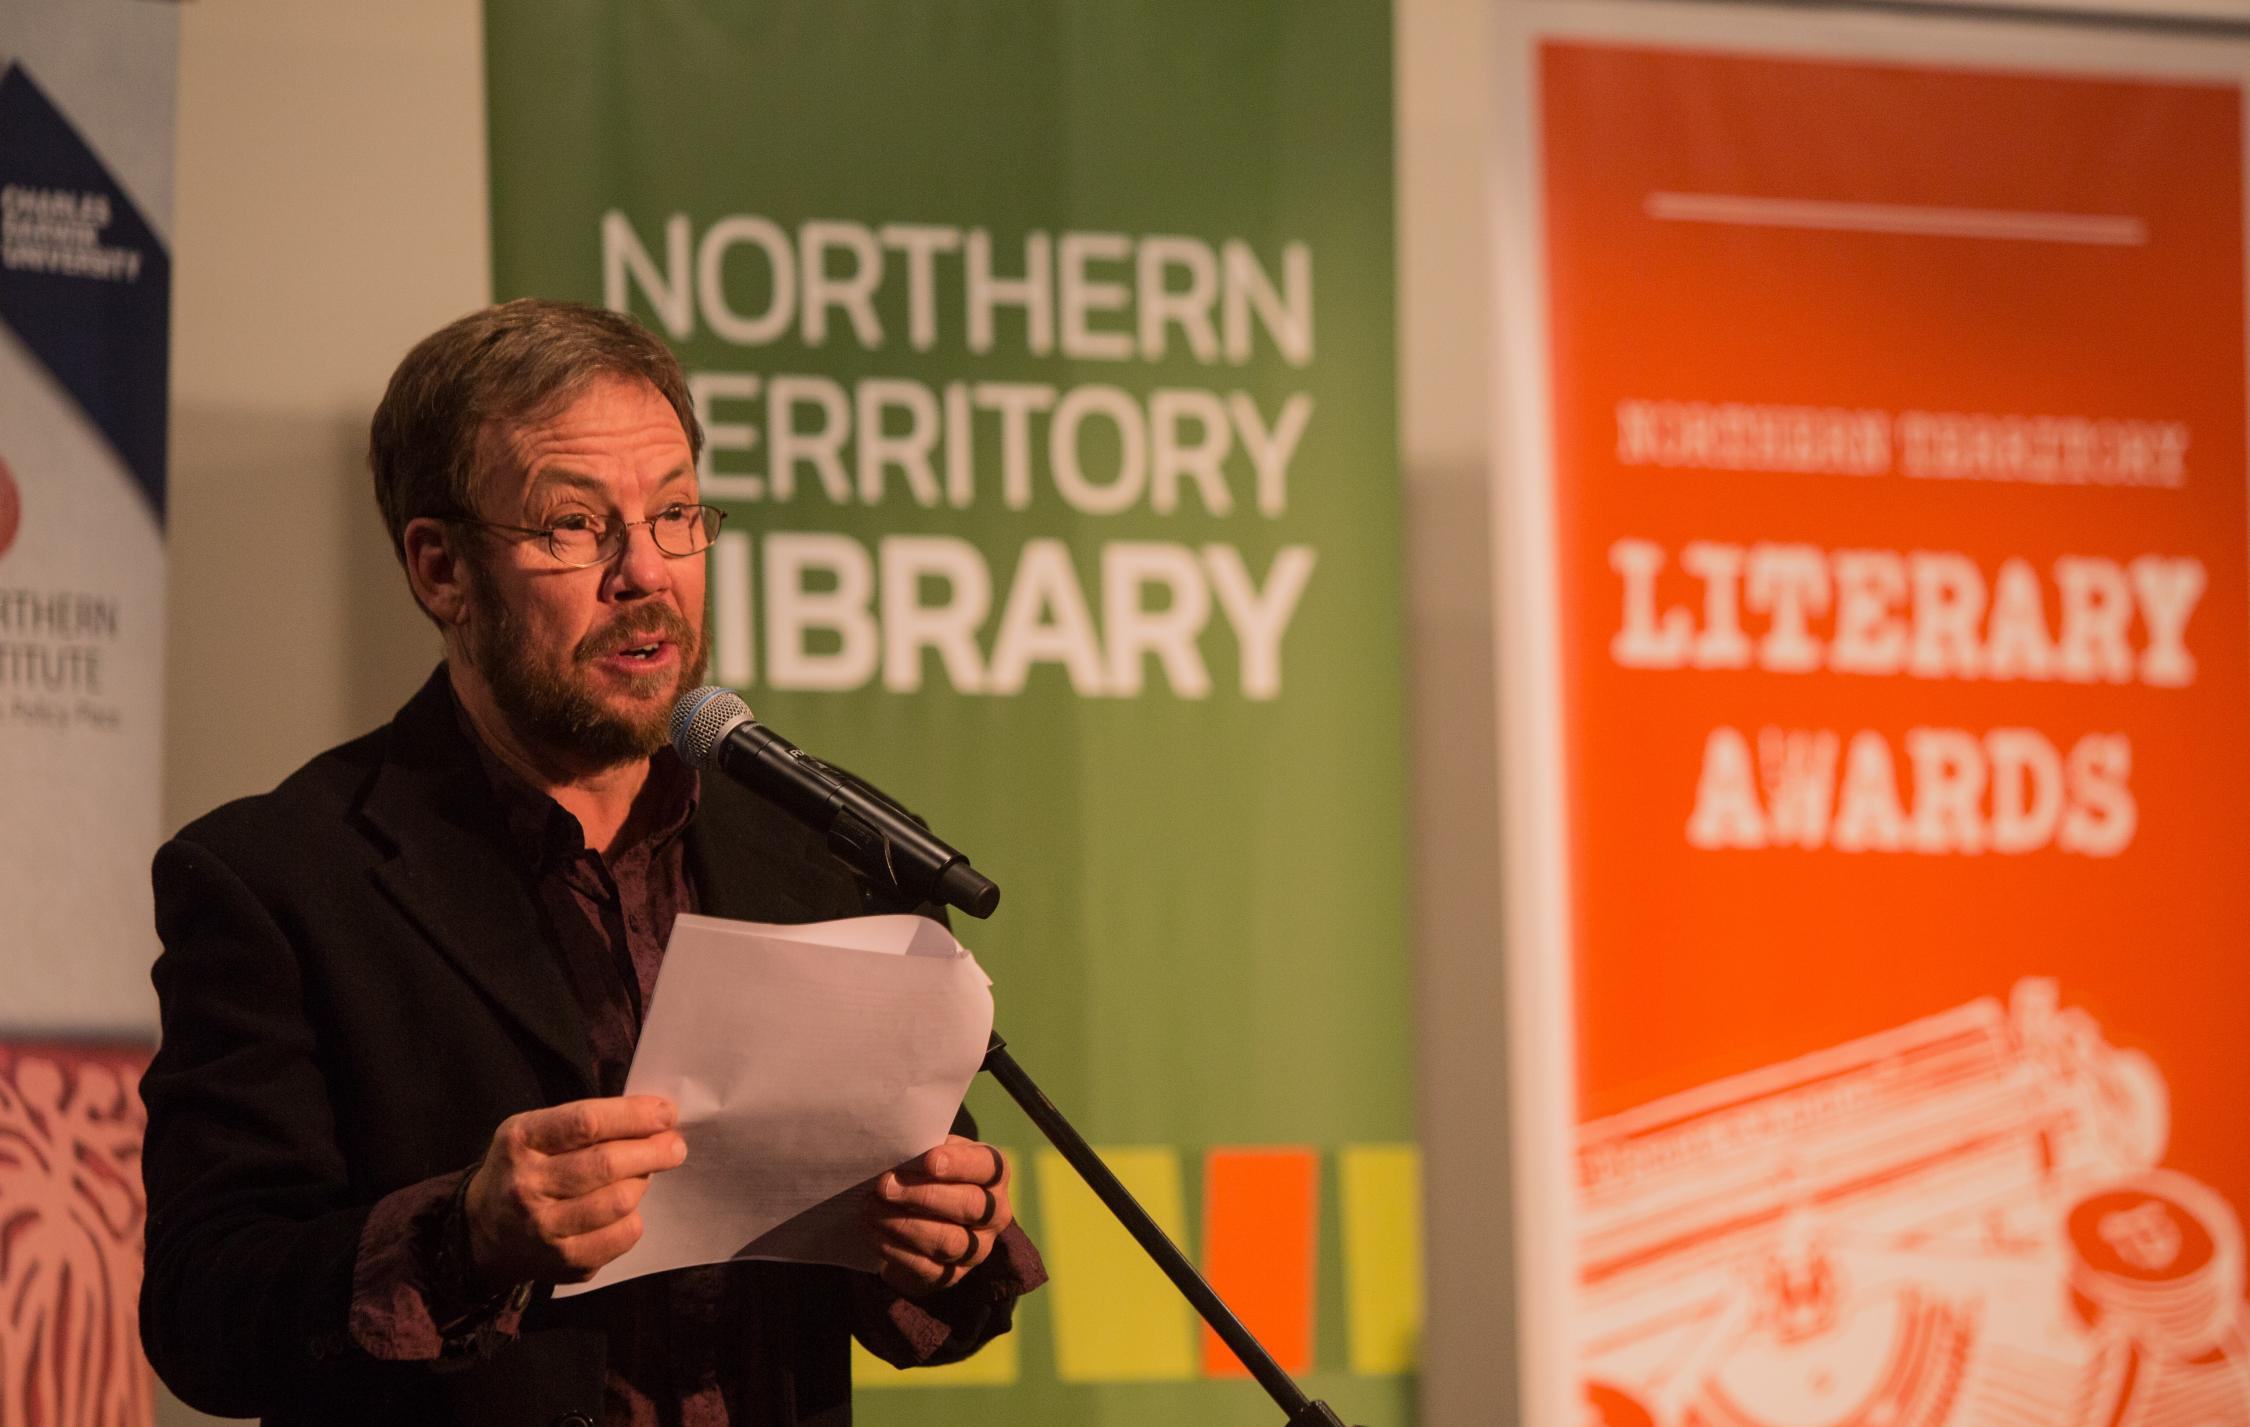 Man on left hand side wearing glass, dark jacket and shirt reading into a microphone. Behind are green and orange banners.